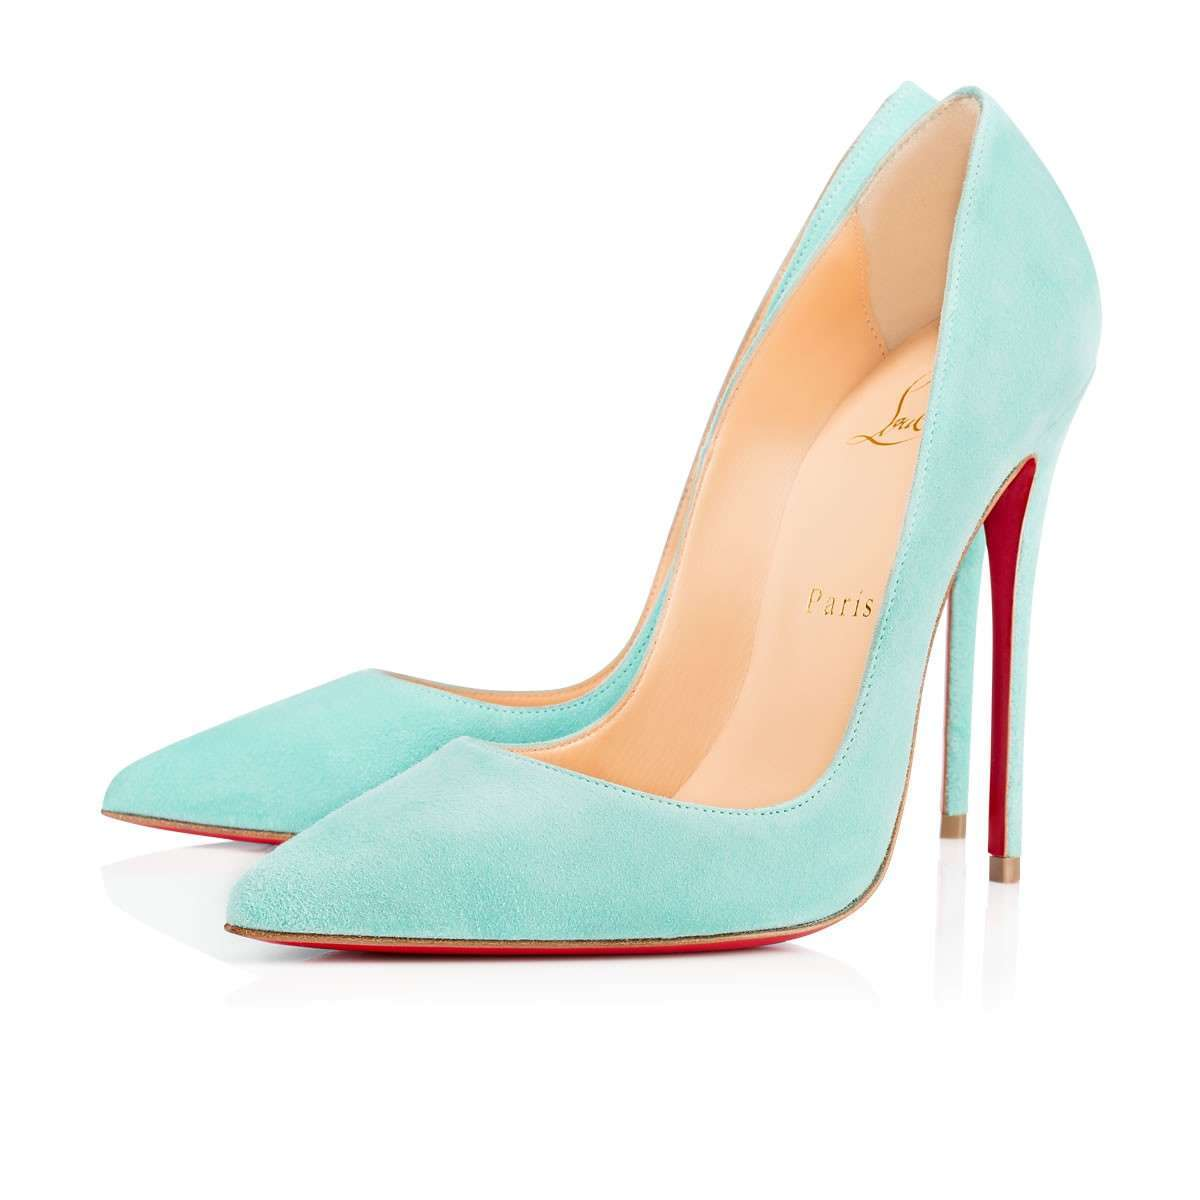 Pumps in suede pastello